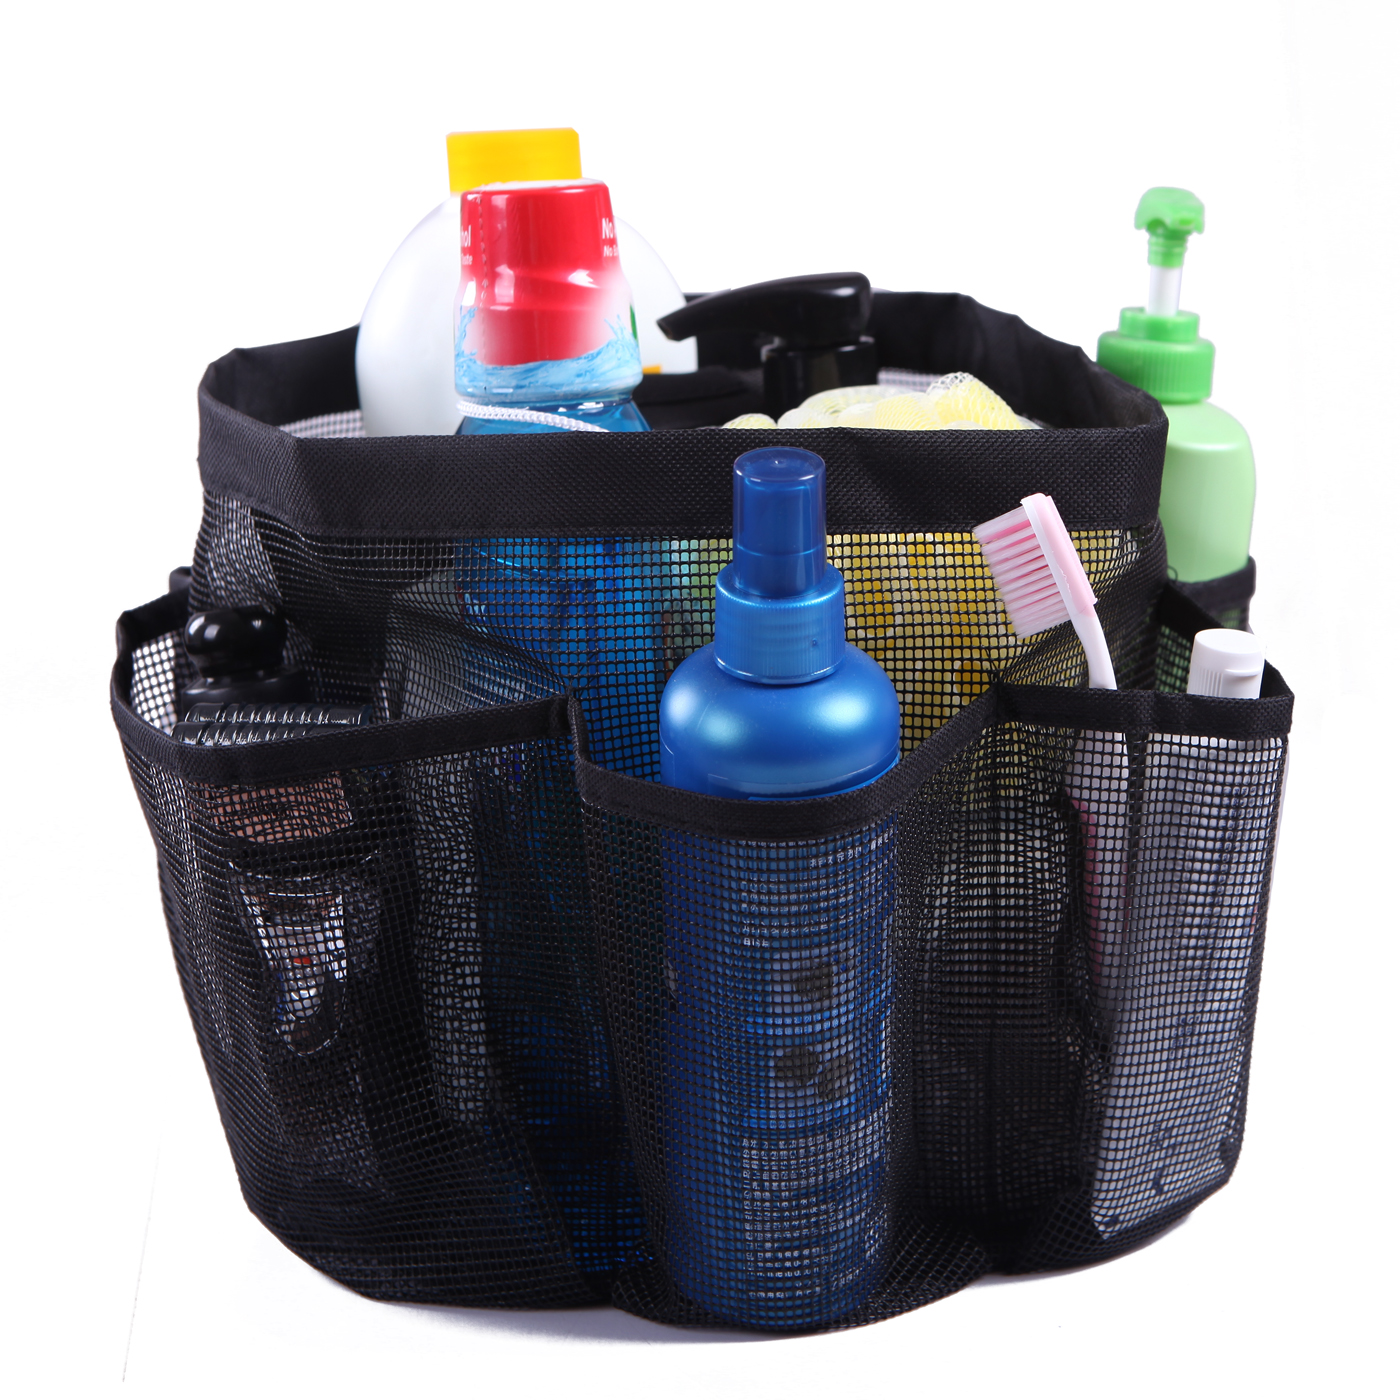 Shower Caddy Tote hde packable mesh shower bag caddy [quick dry] bathroom carry tote